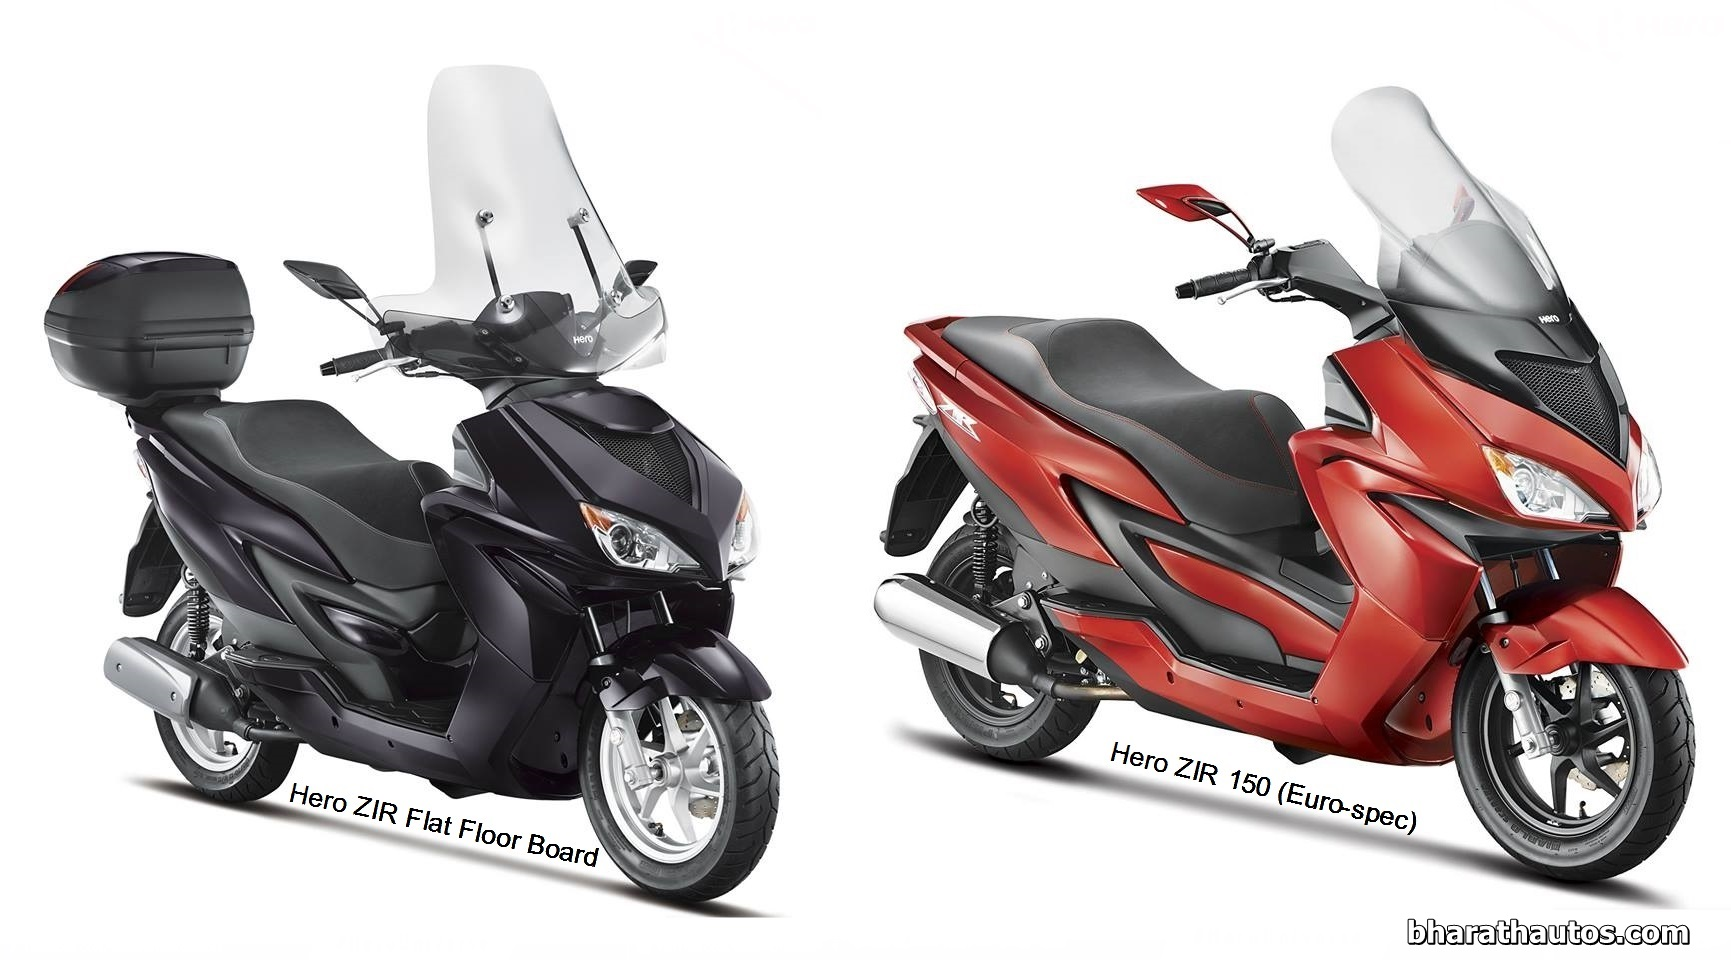 2014 Auto Expo – Hero MotoCorp's upcoming scooter in 2015 & 2016